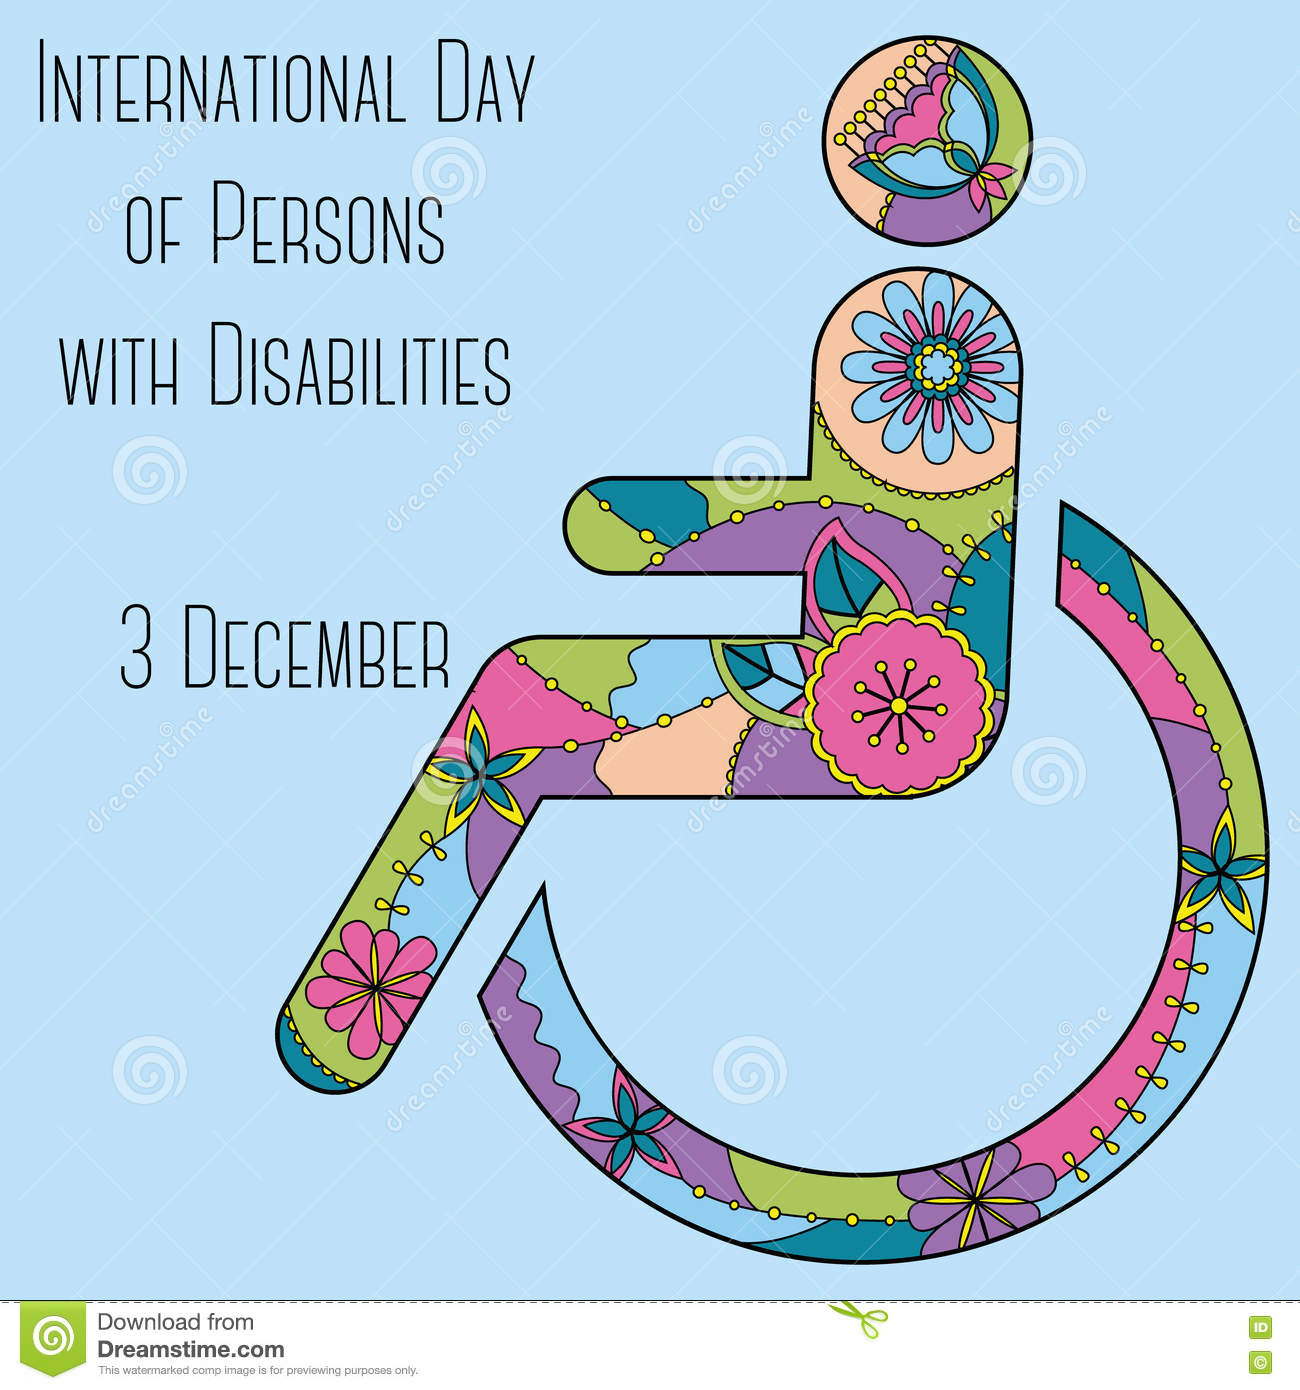 Day of Persons with Disabilities background